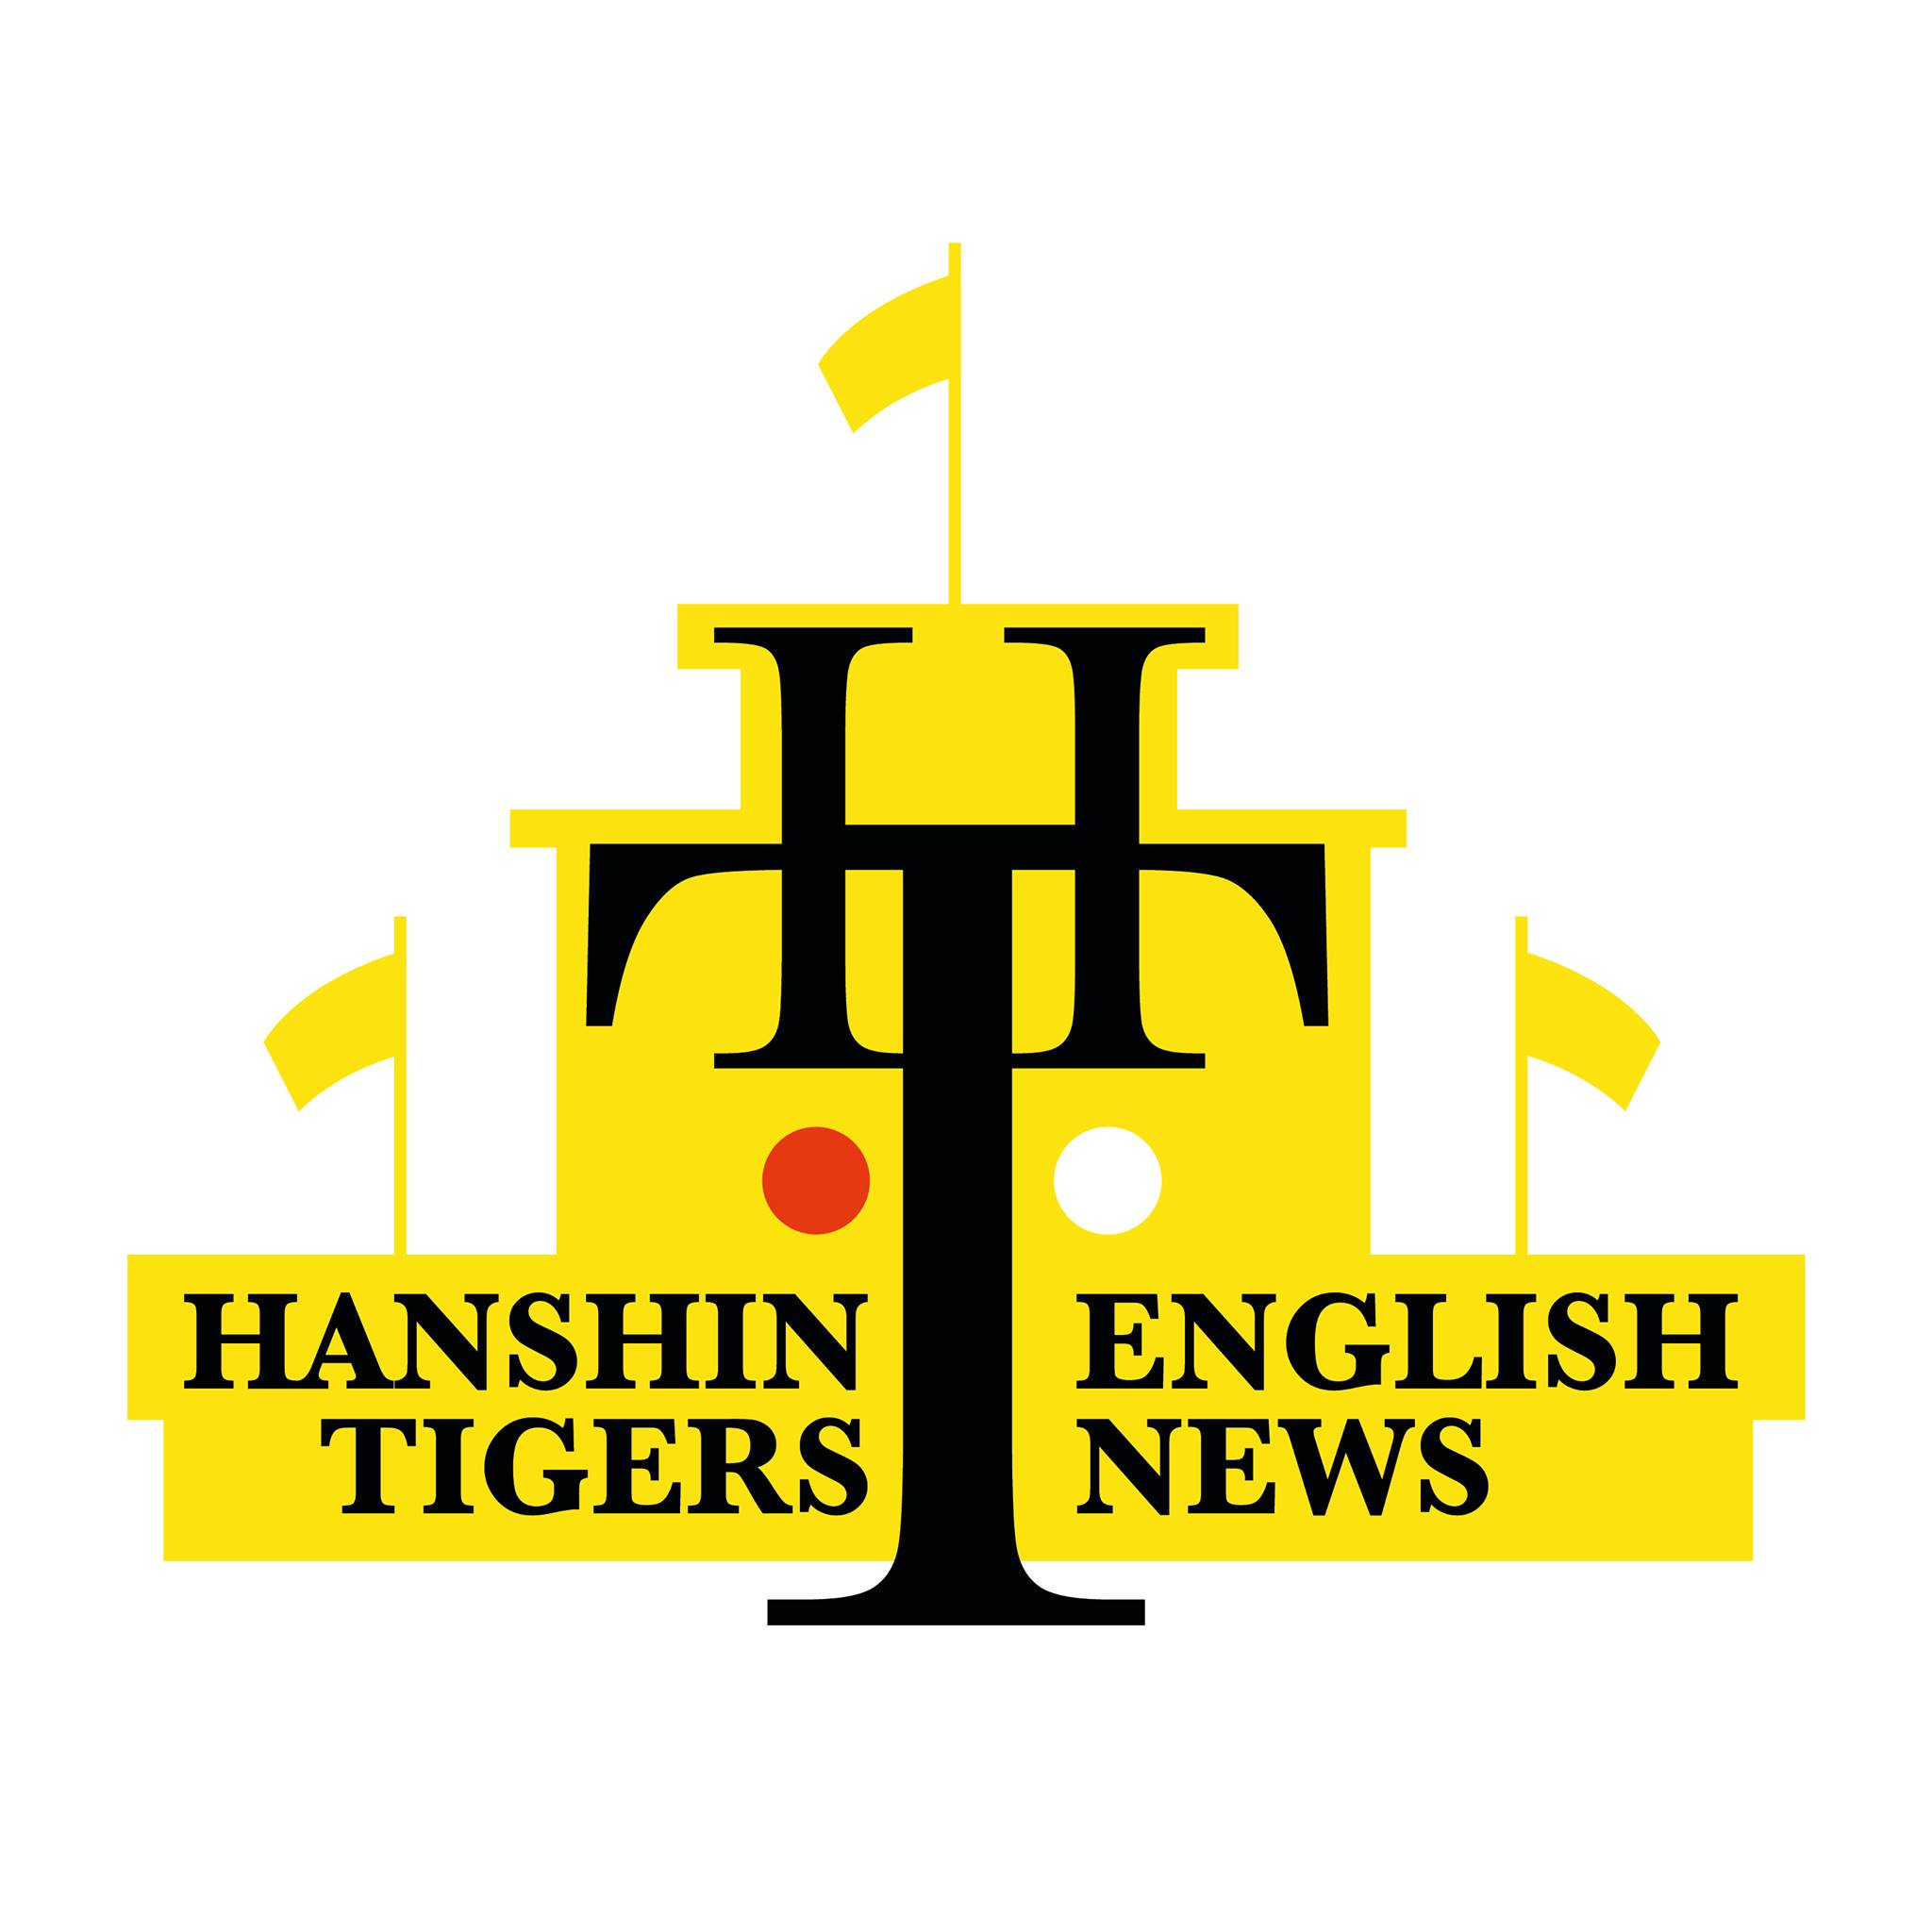 H-TEN - Hanshin Tigers English News